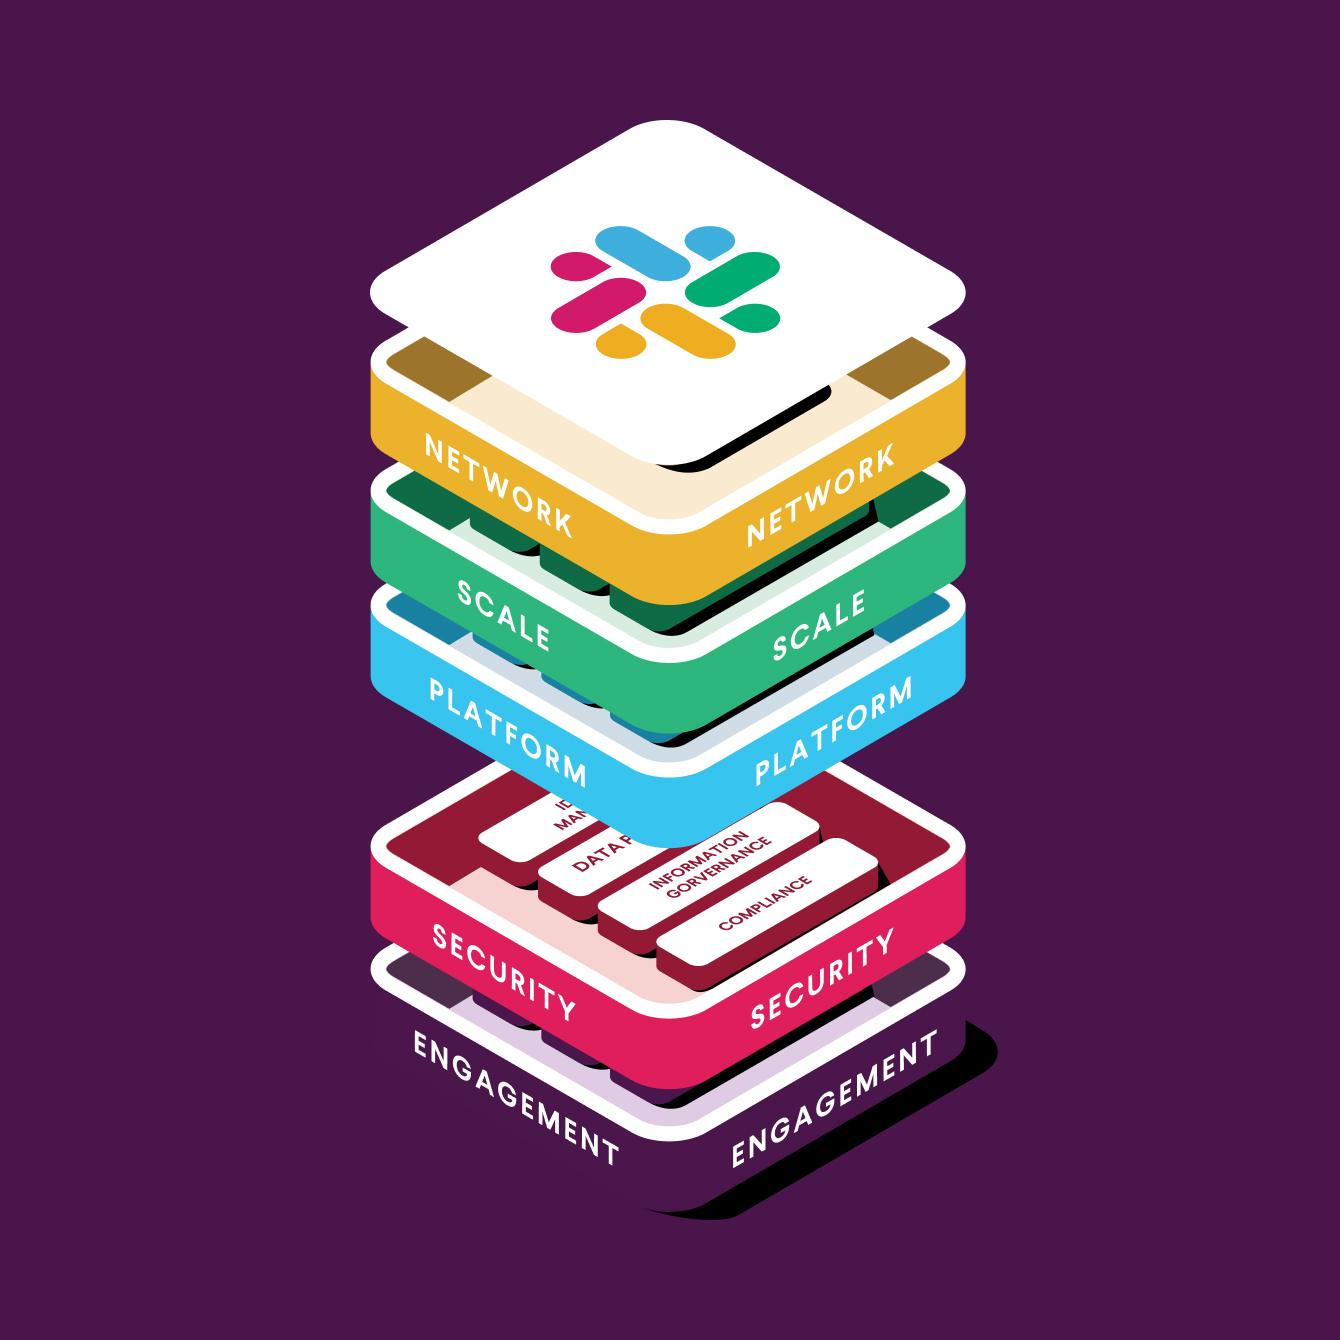 Colourful blocks with Slack logos